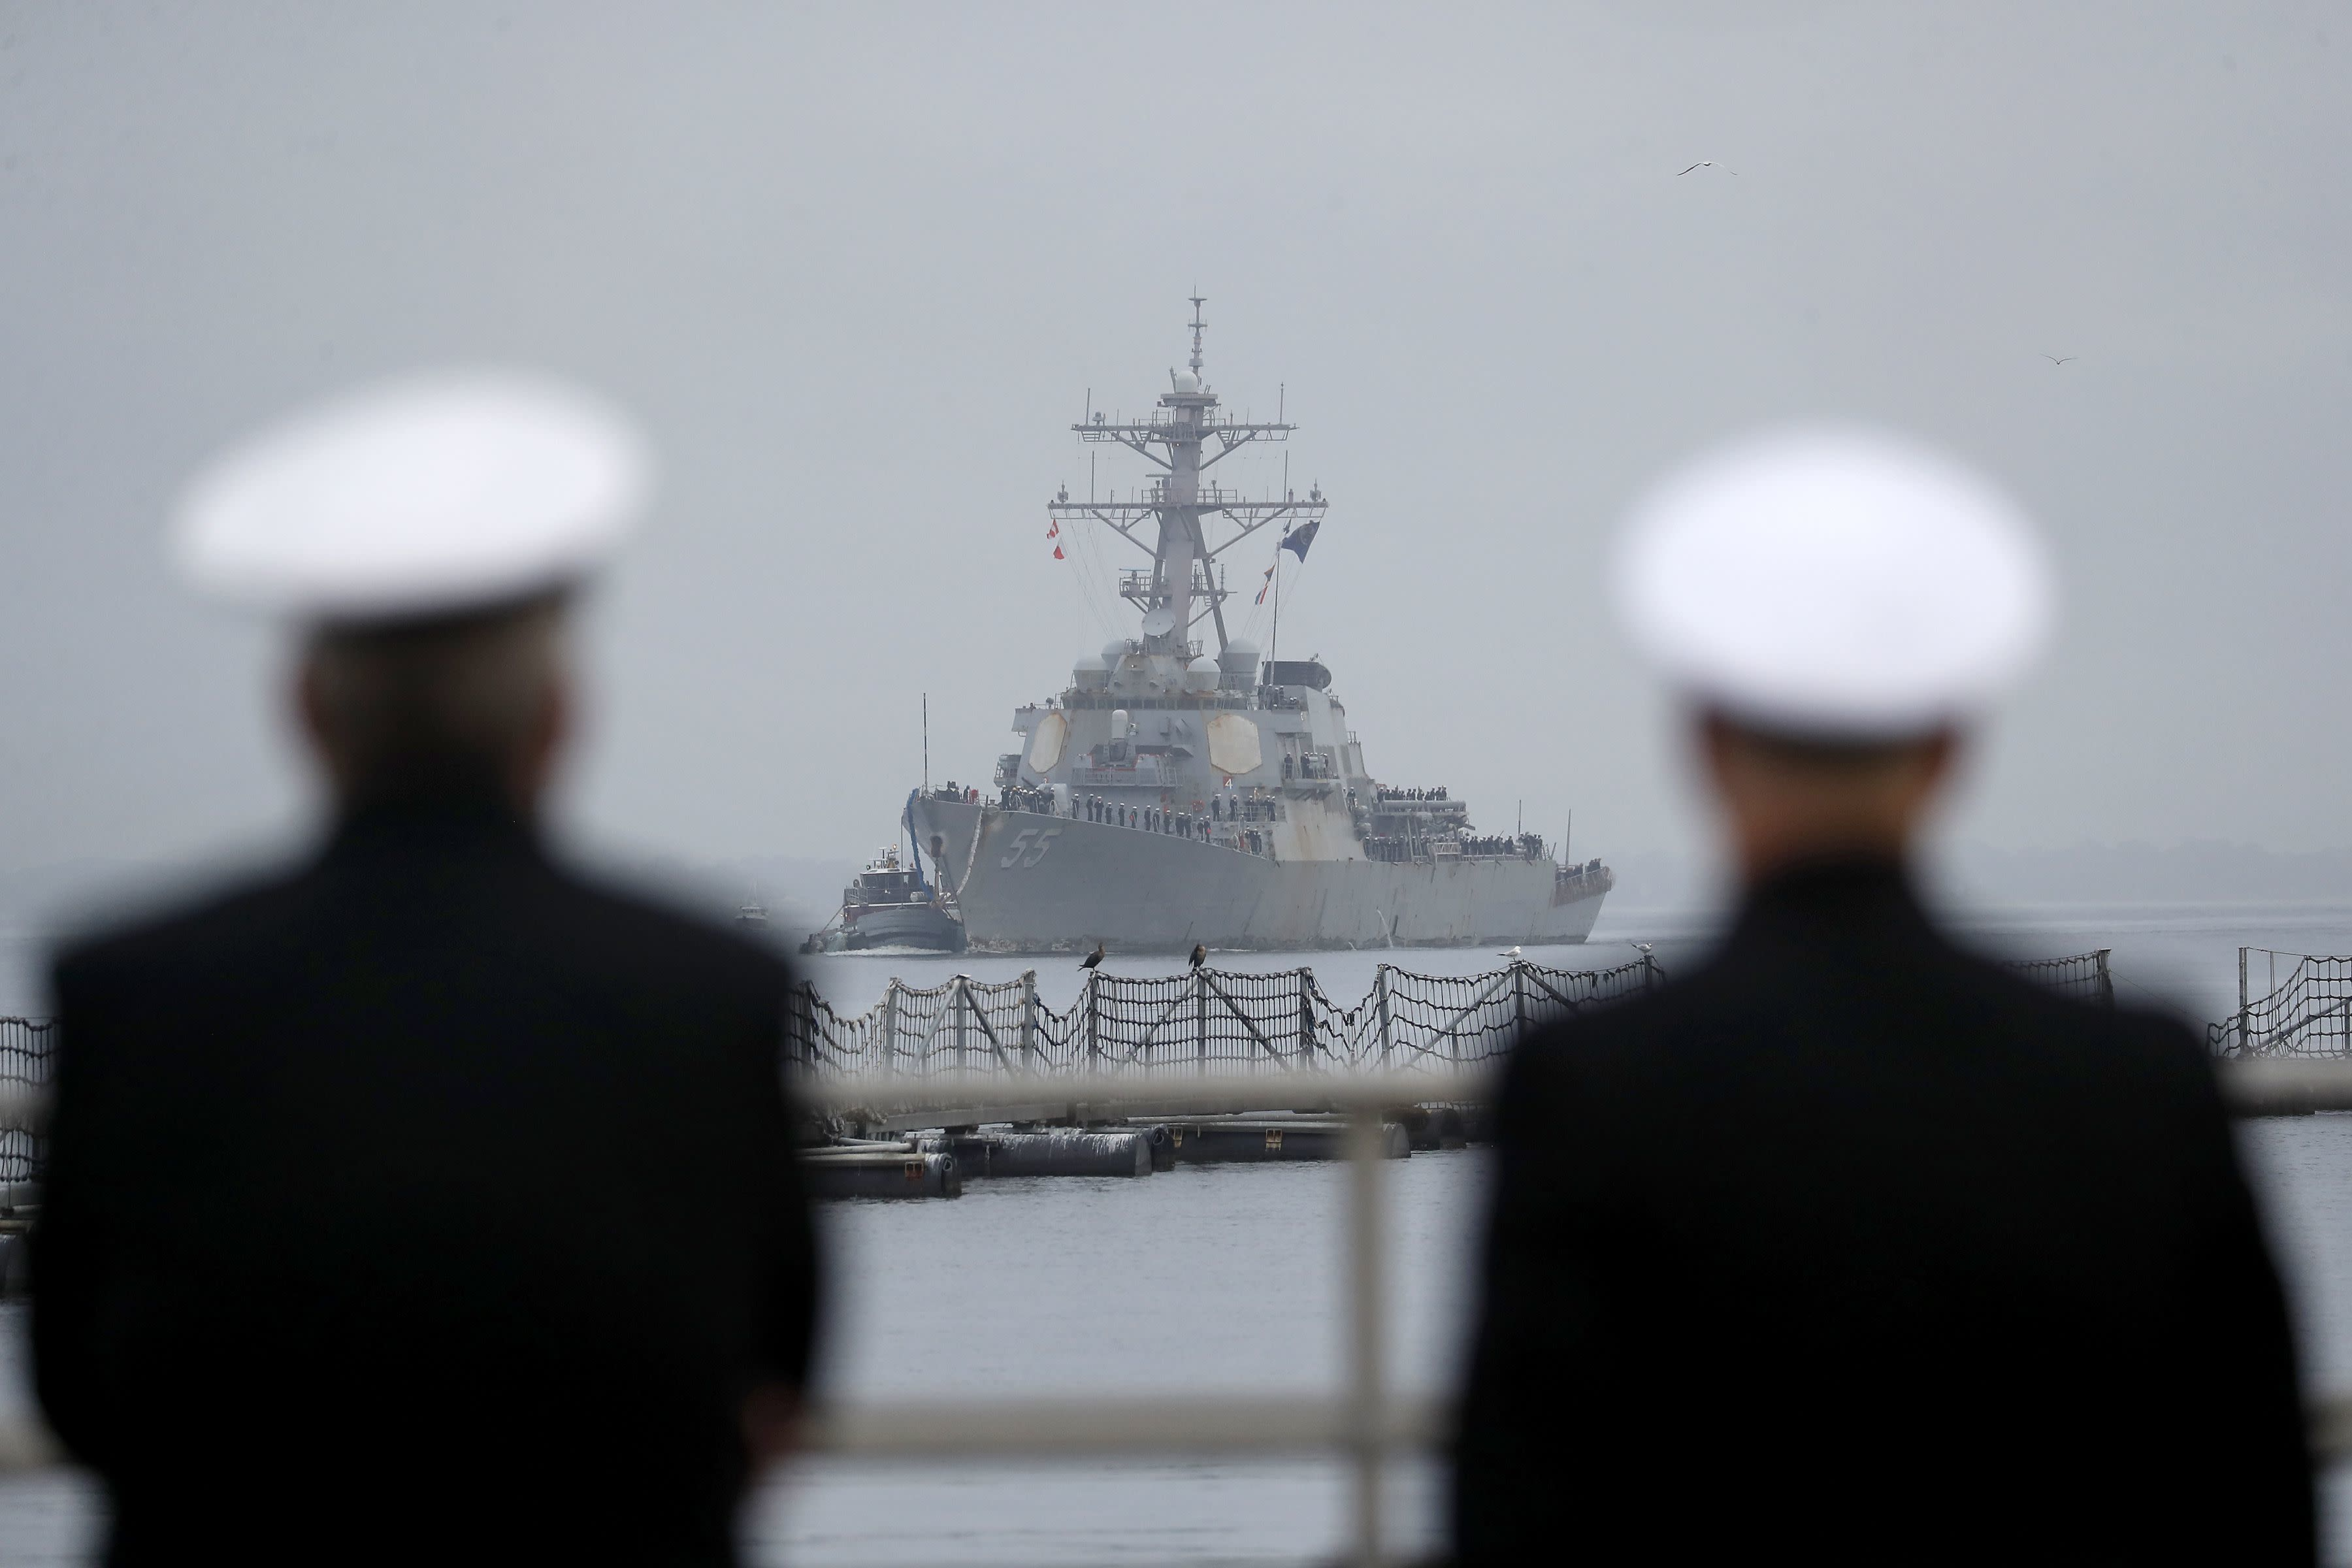 After record-setting 215 days at sea, a long-awaited homecoming for USS Stout